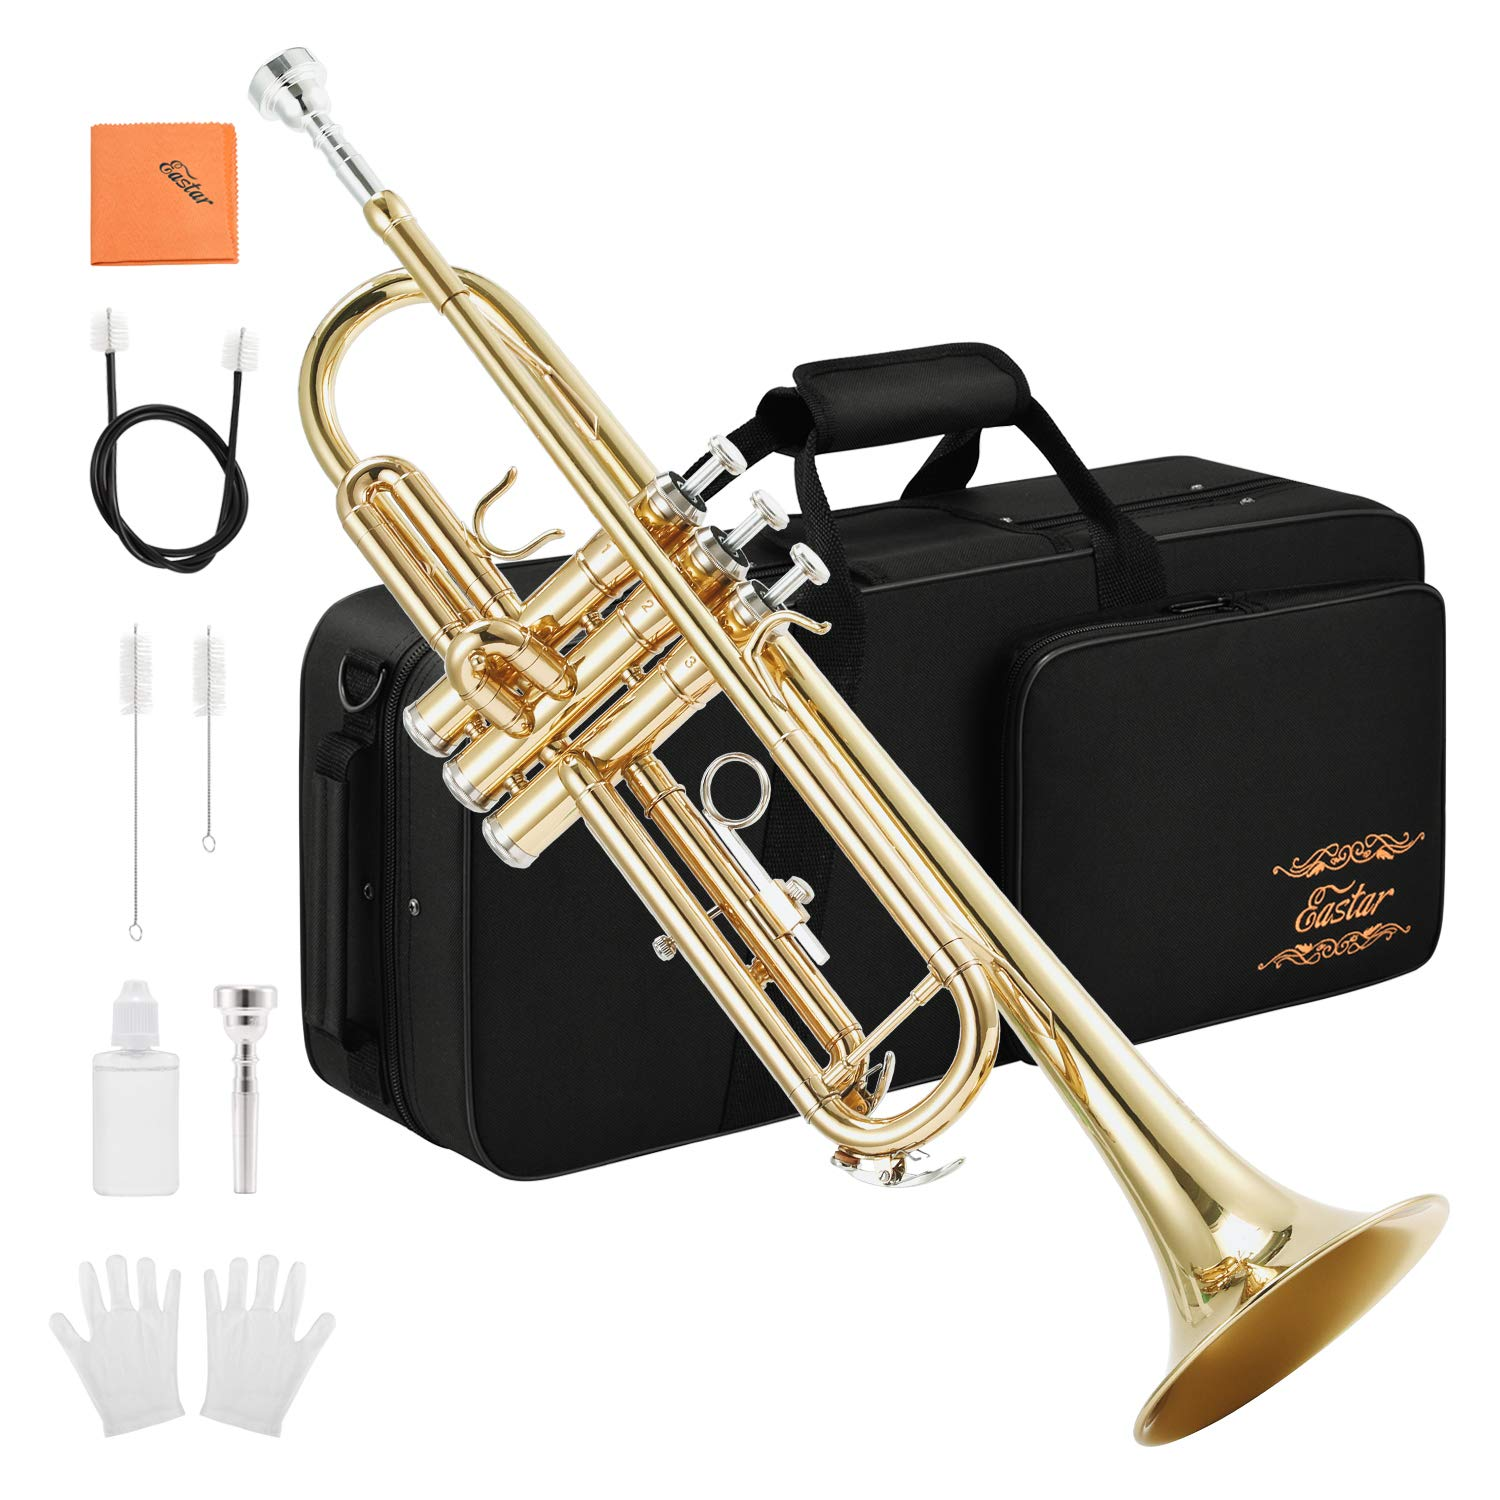 Eastar Gold Trumpet Brass ETR-380 Standard Bb Trumpet Set For Student Beginner With Hard Case,Gloves, 7 C Mouthpiece, Valve Oil and Trumpet Cleaning Kit by Eastar